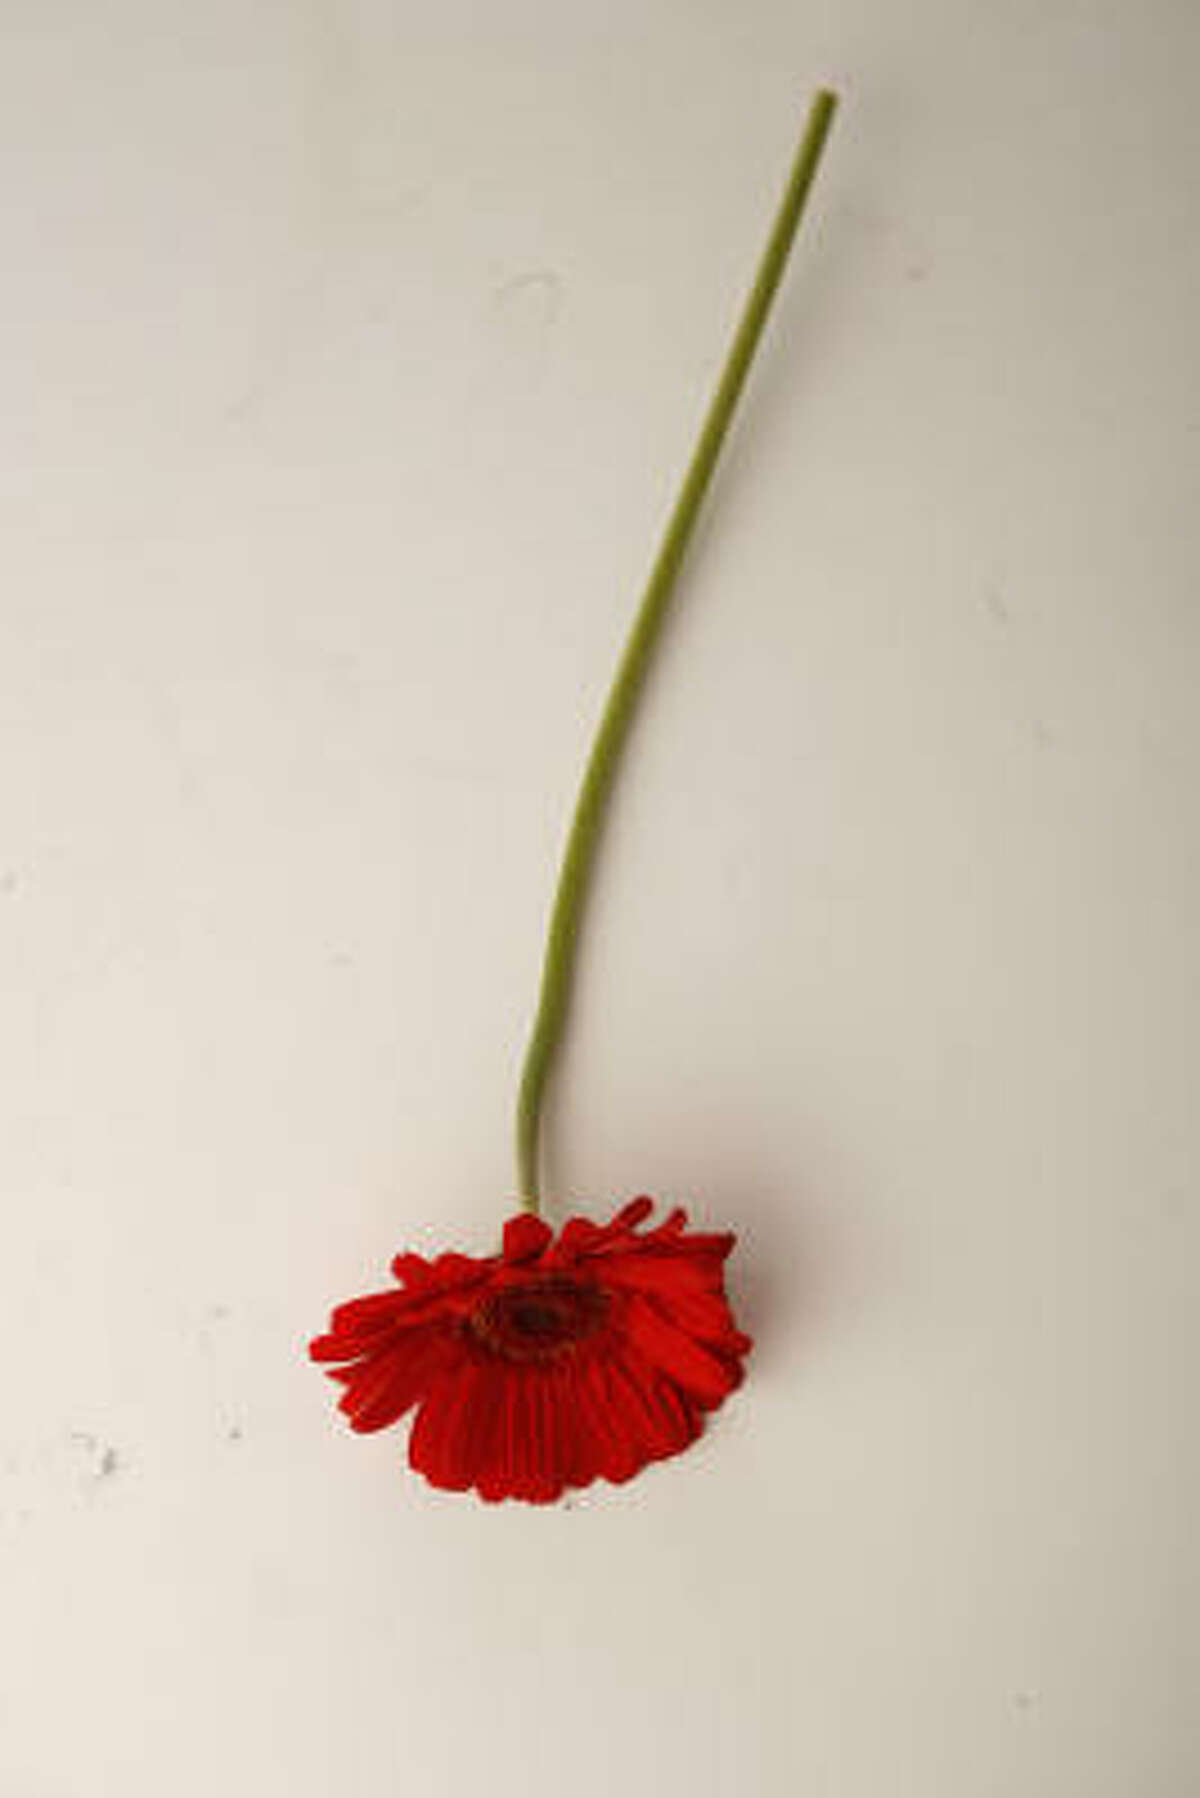 Red Gerbera daisies Supermarket flower tips | Video: Grocery store orchids | Submit your garden photos | HoustonGrows.com